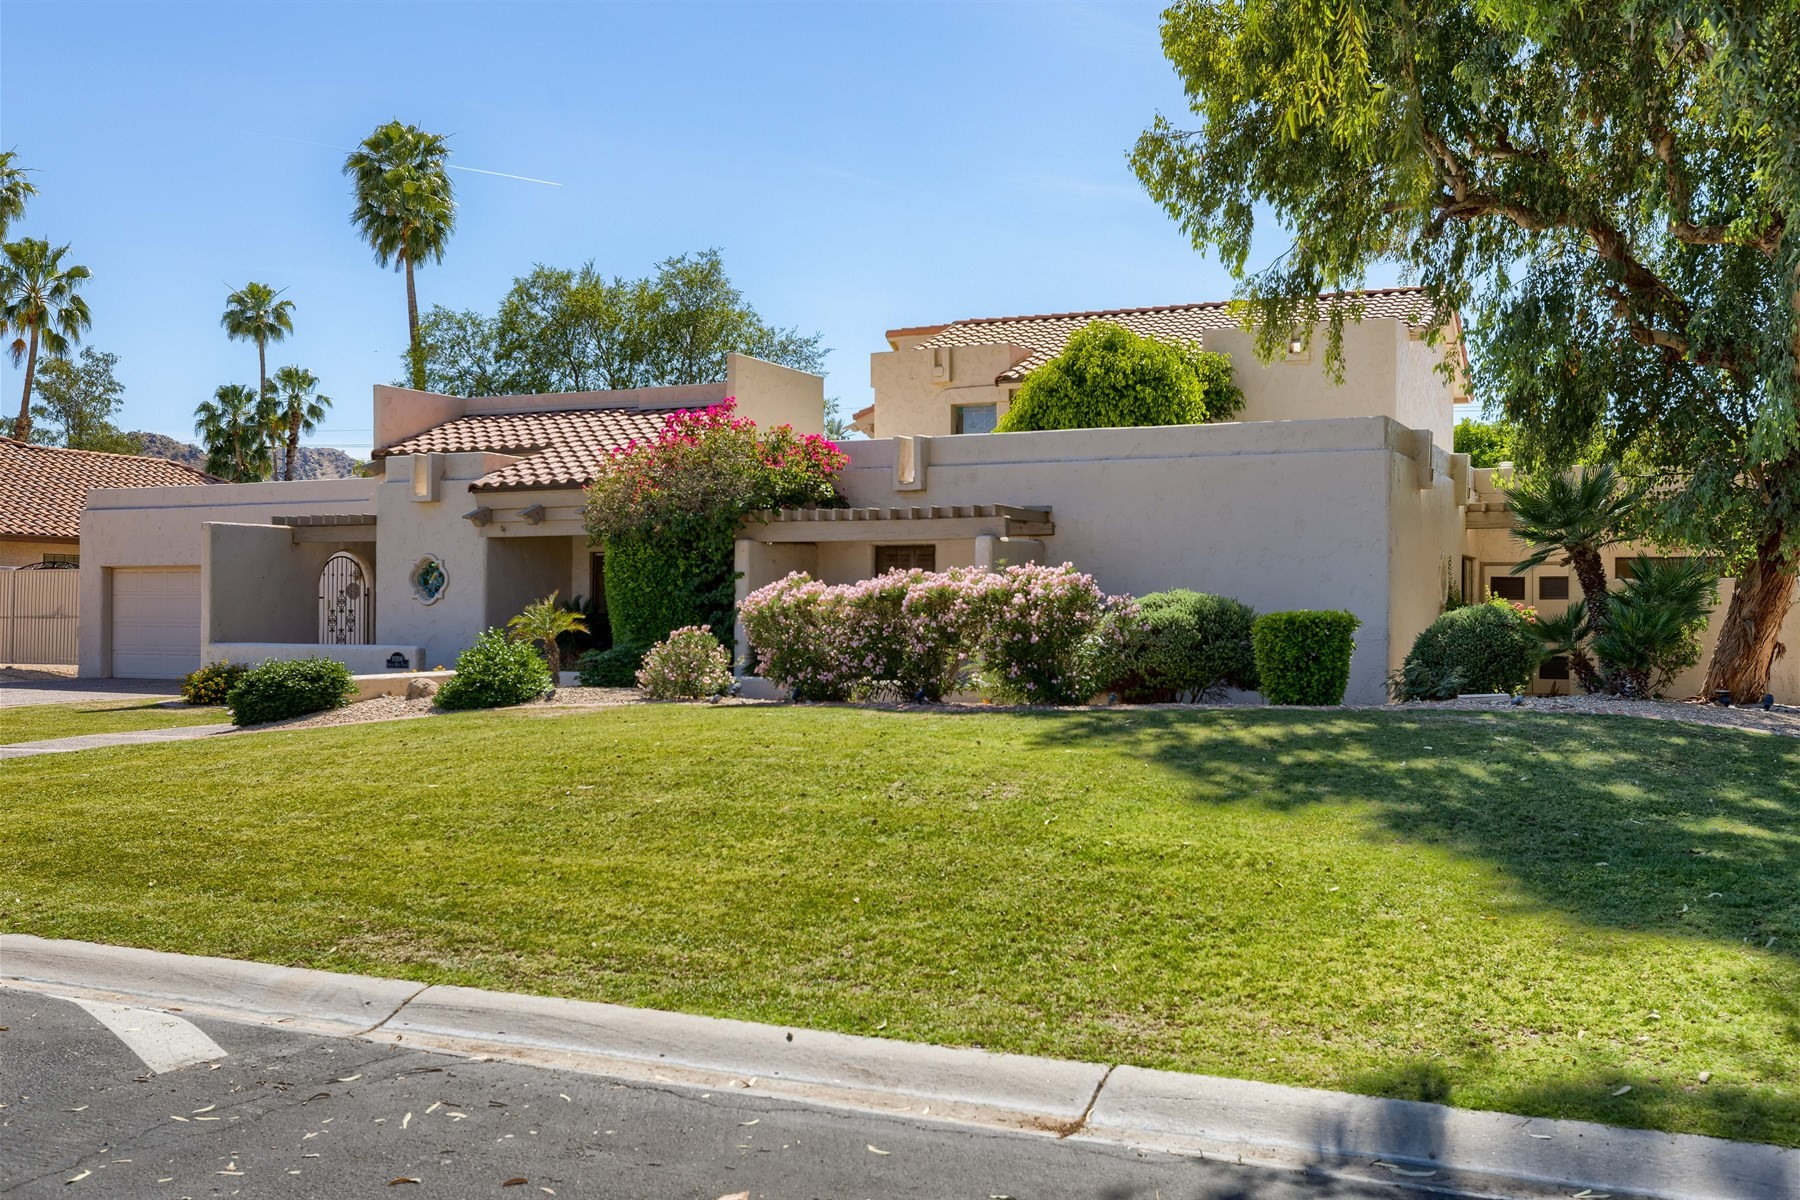 Single Family Home for Sale at Meticulously Maintained Paradise Valley courtyard home 10308 N 48th Pl Paradise Valley, Arizona, 85253 United States